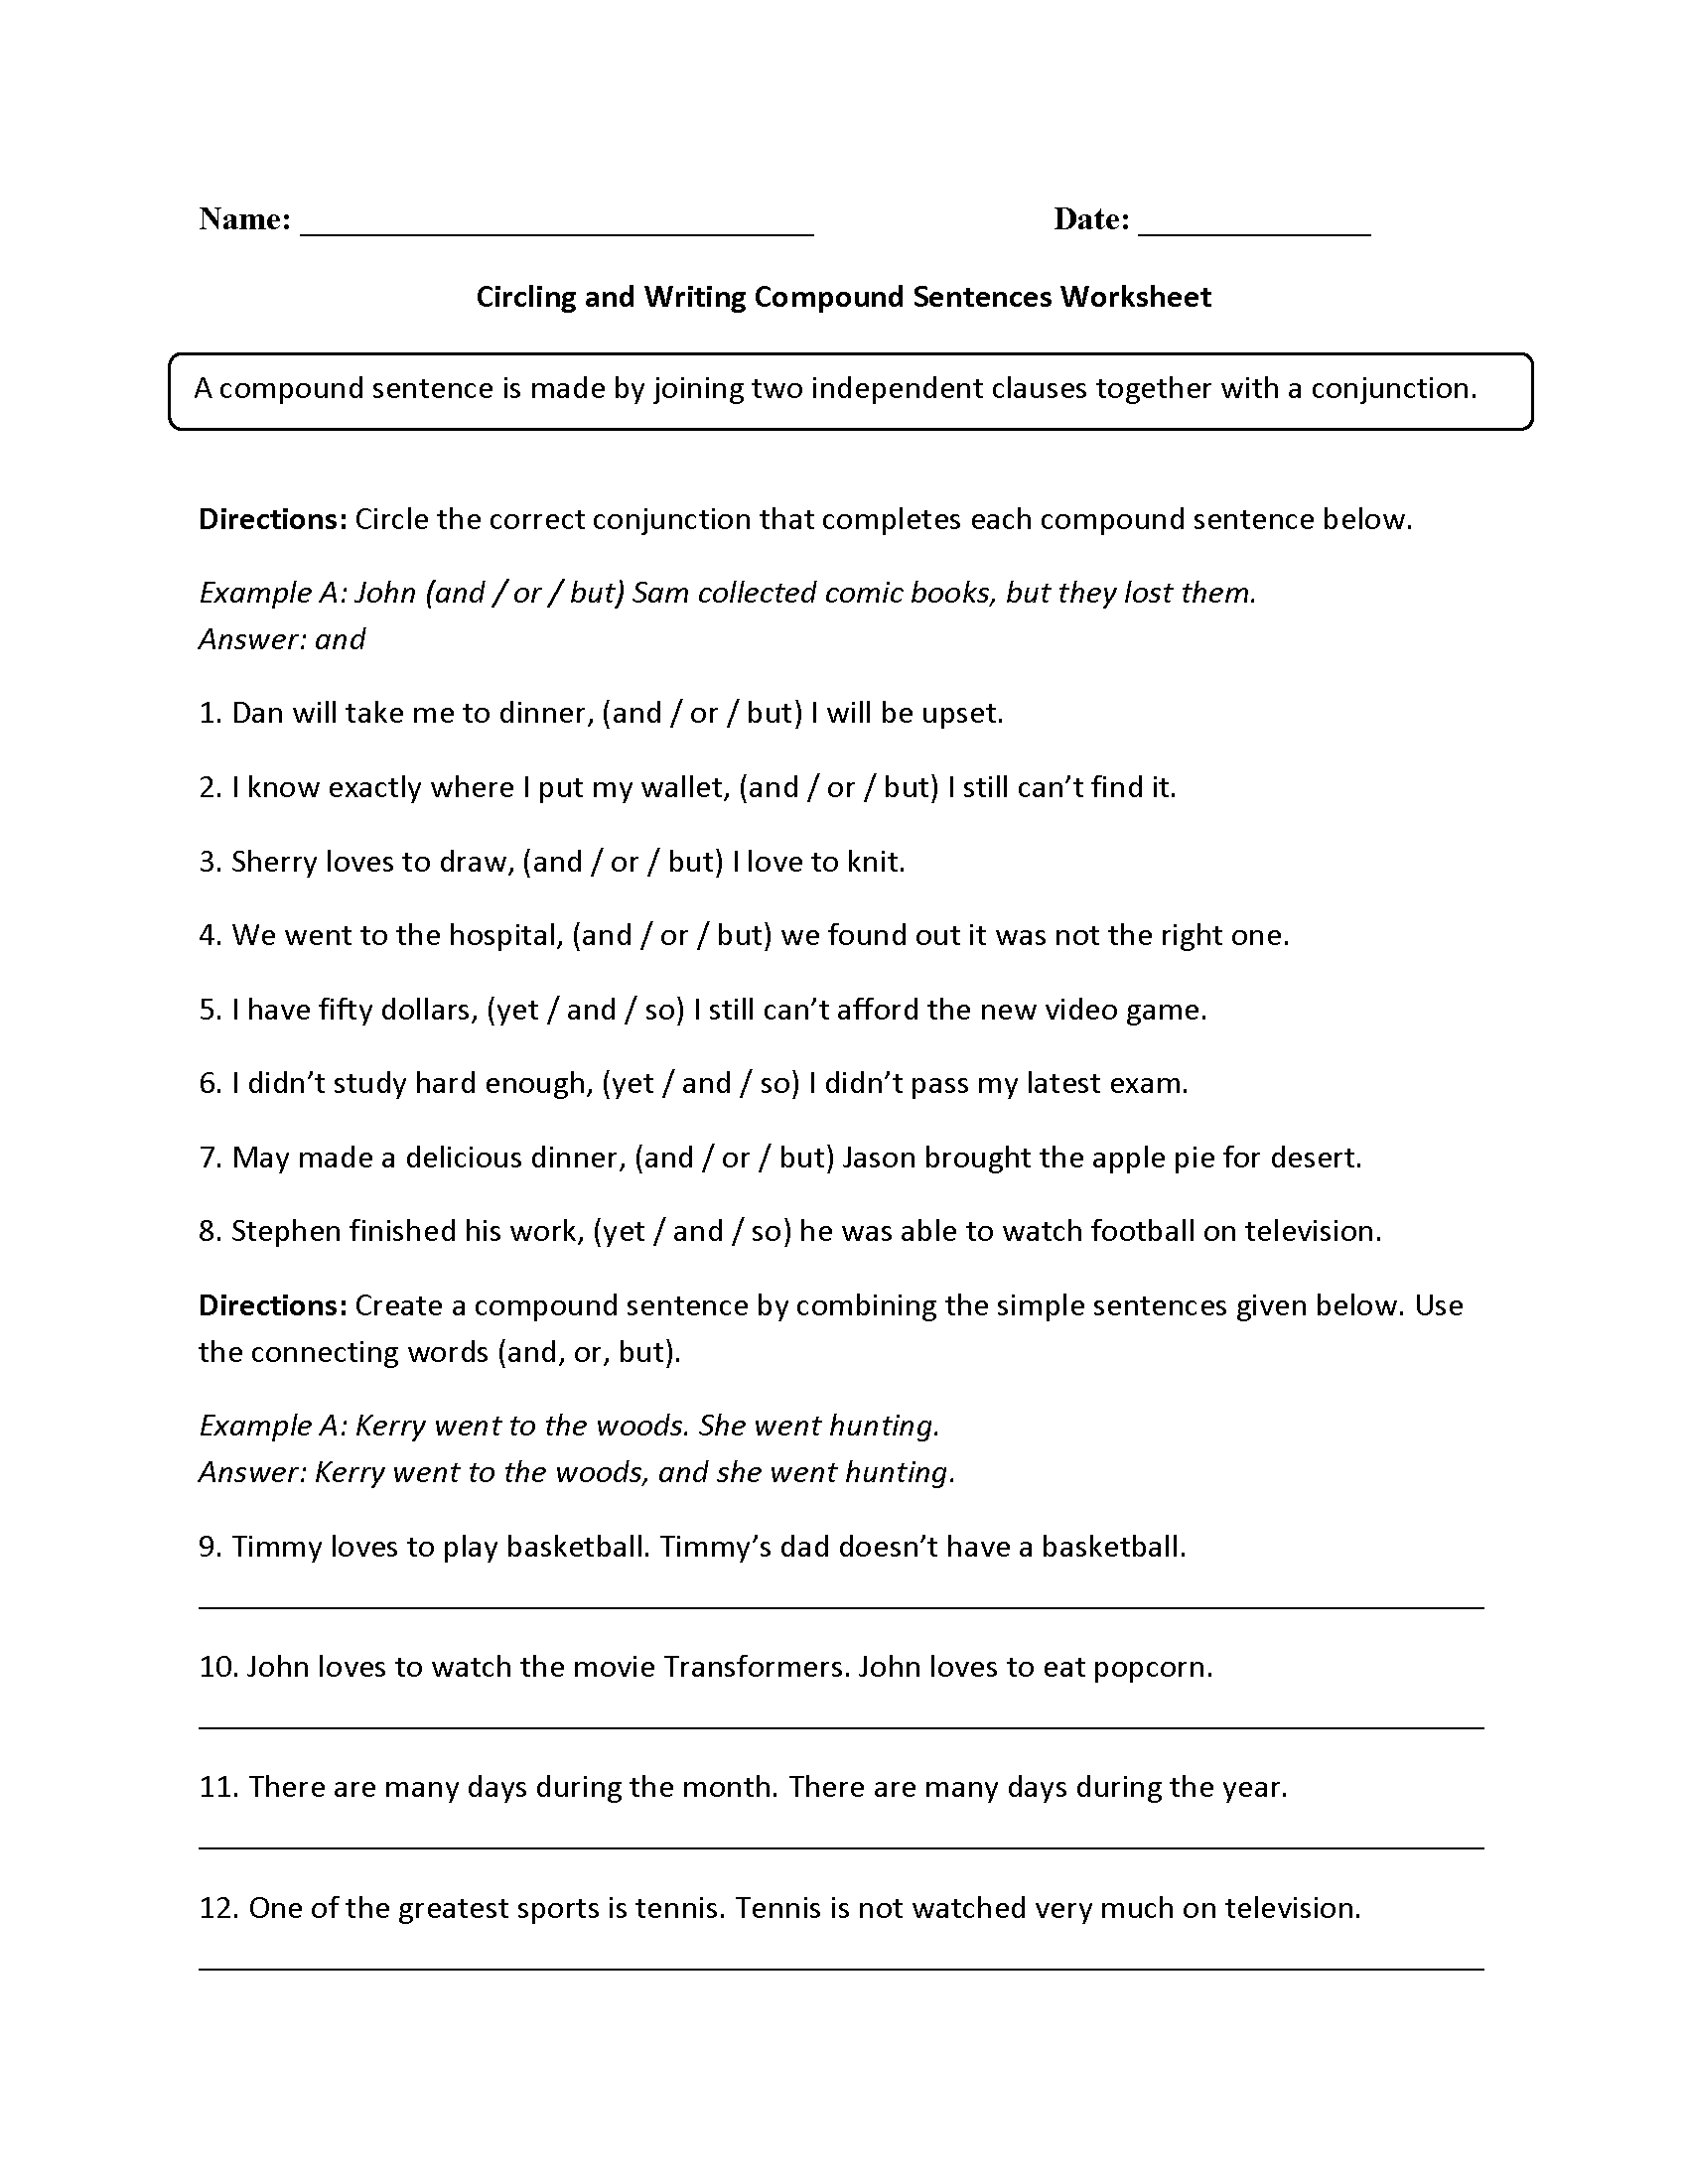 Circling And Writing Compound Sentences Worksheet